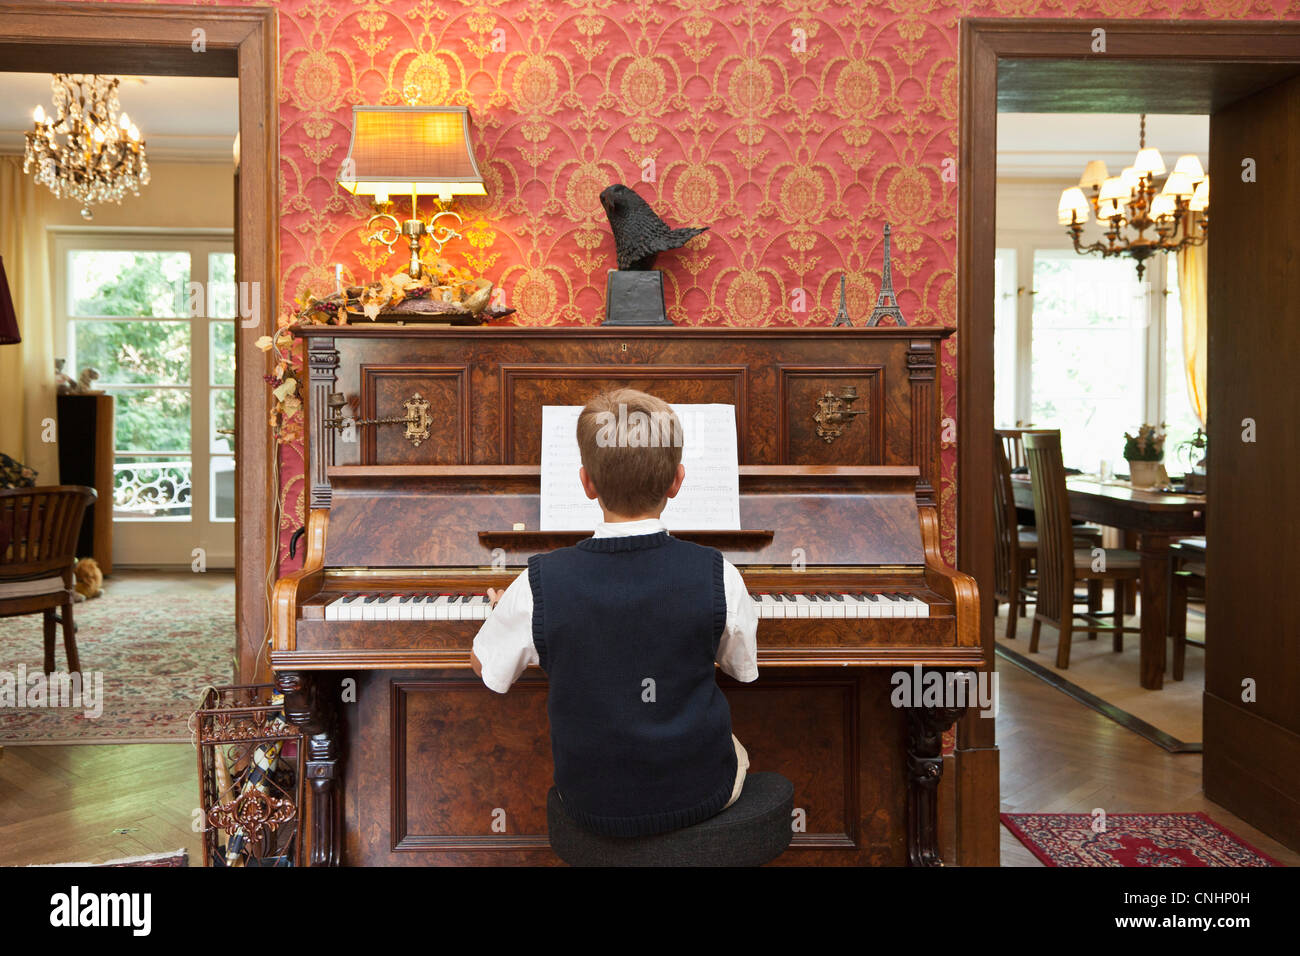 A boy practicing on an old-fashioned upright piano - Stock Image